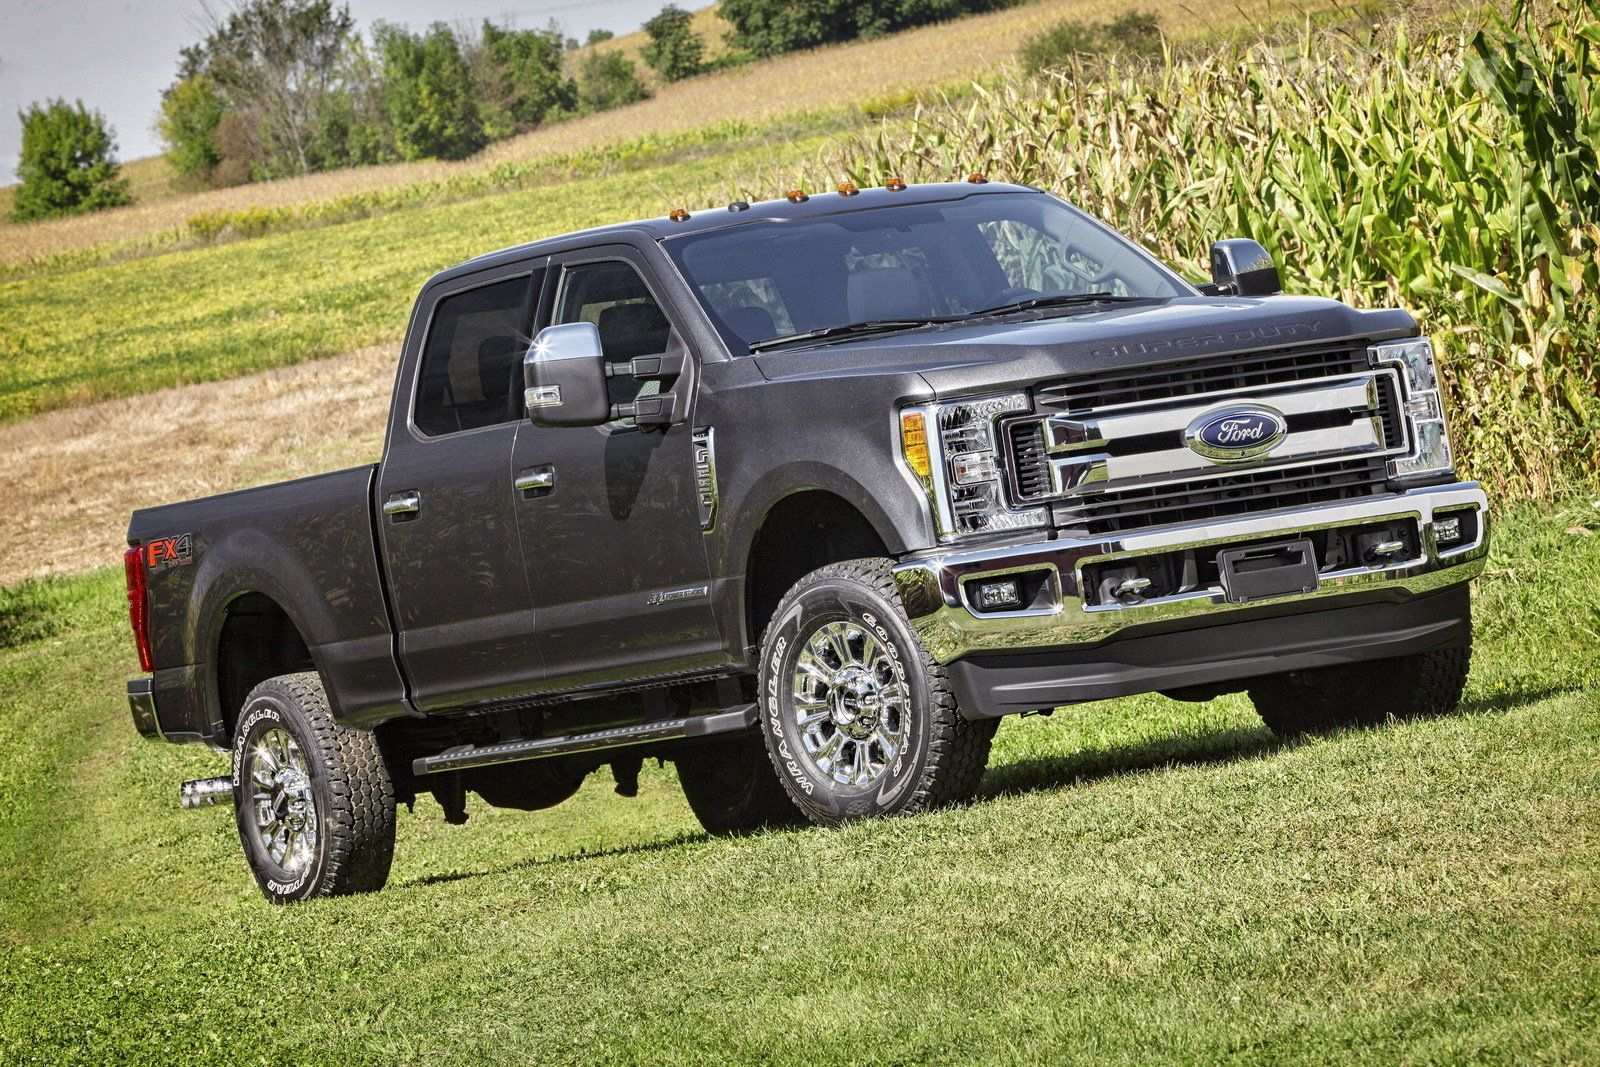 98 The Best 2020 Ford F250 Diesel Rumored Announced New Concept